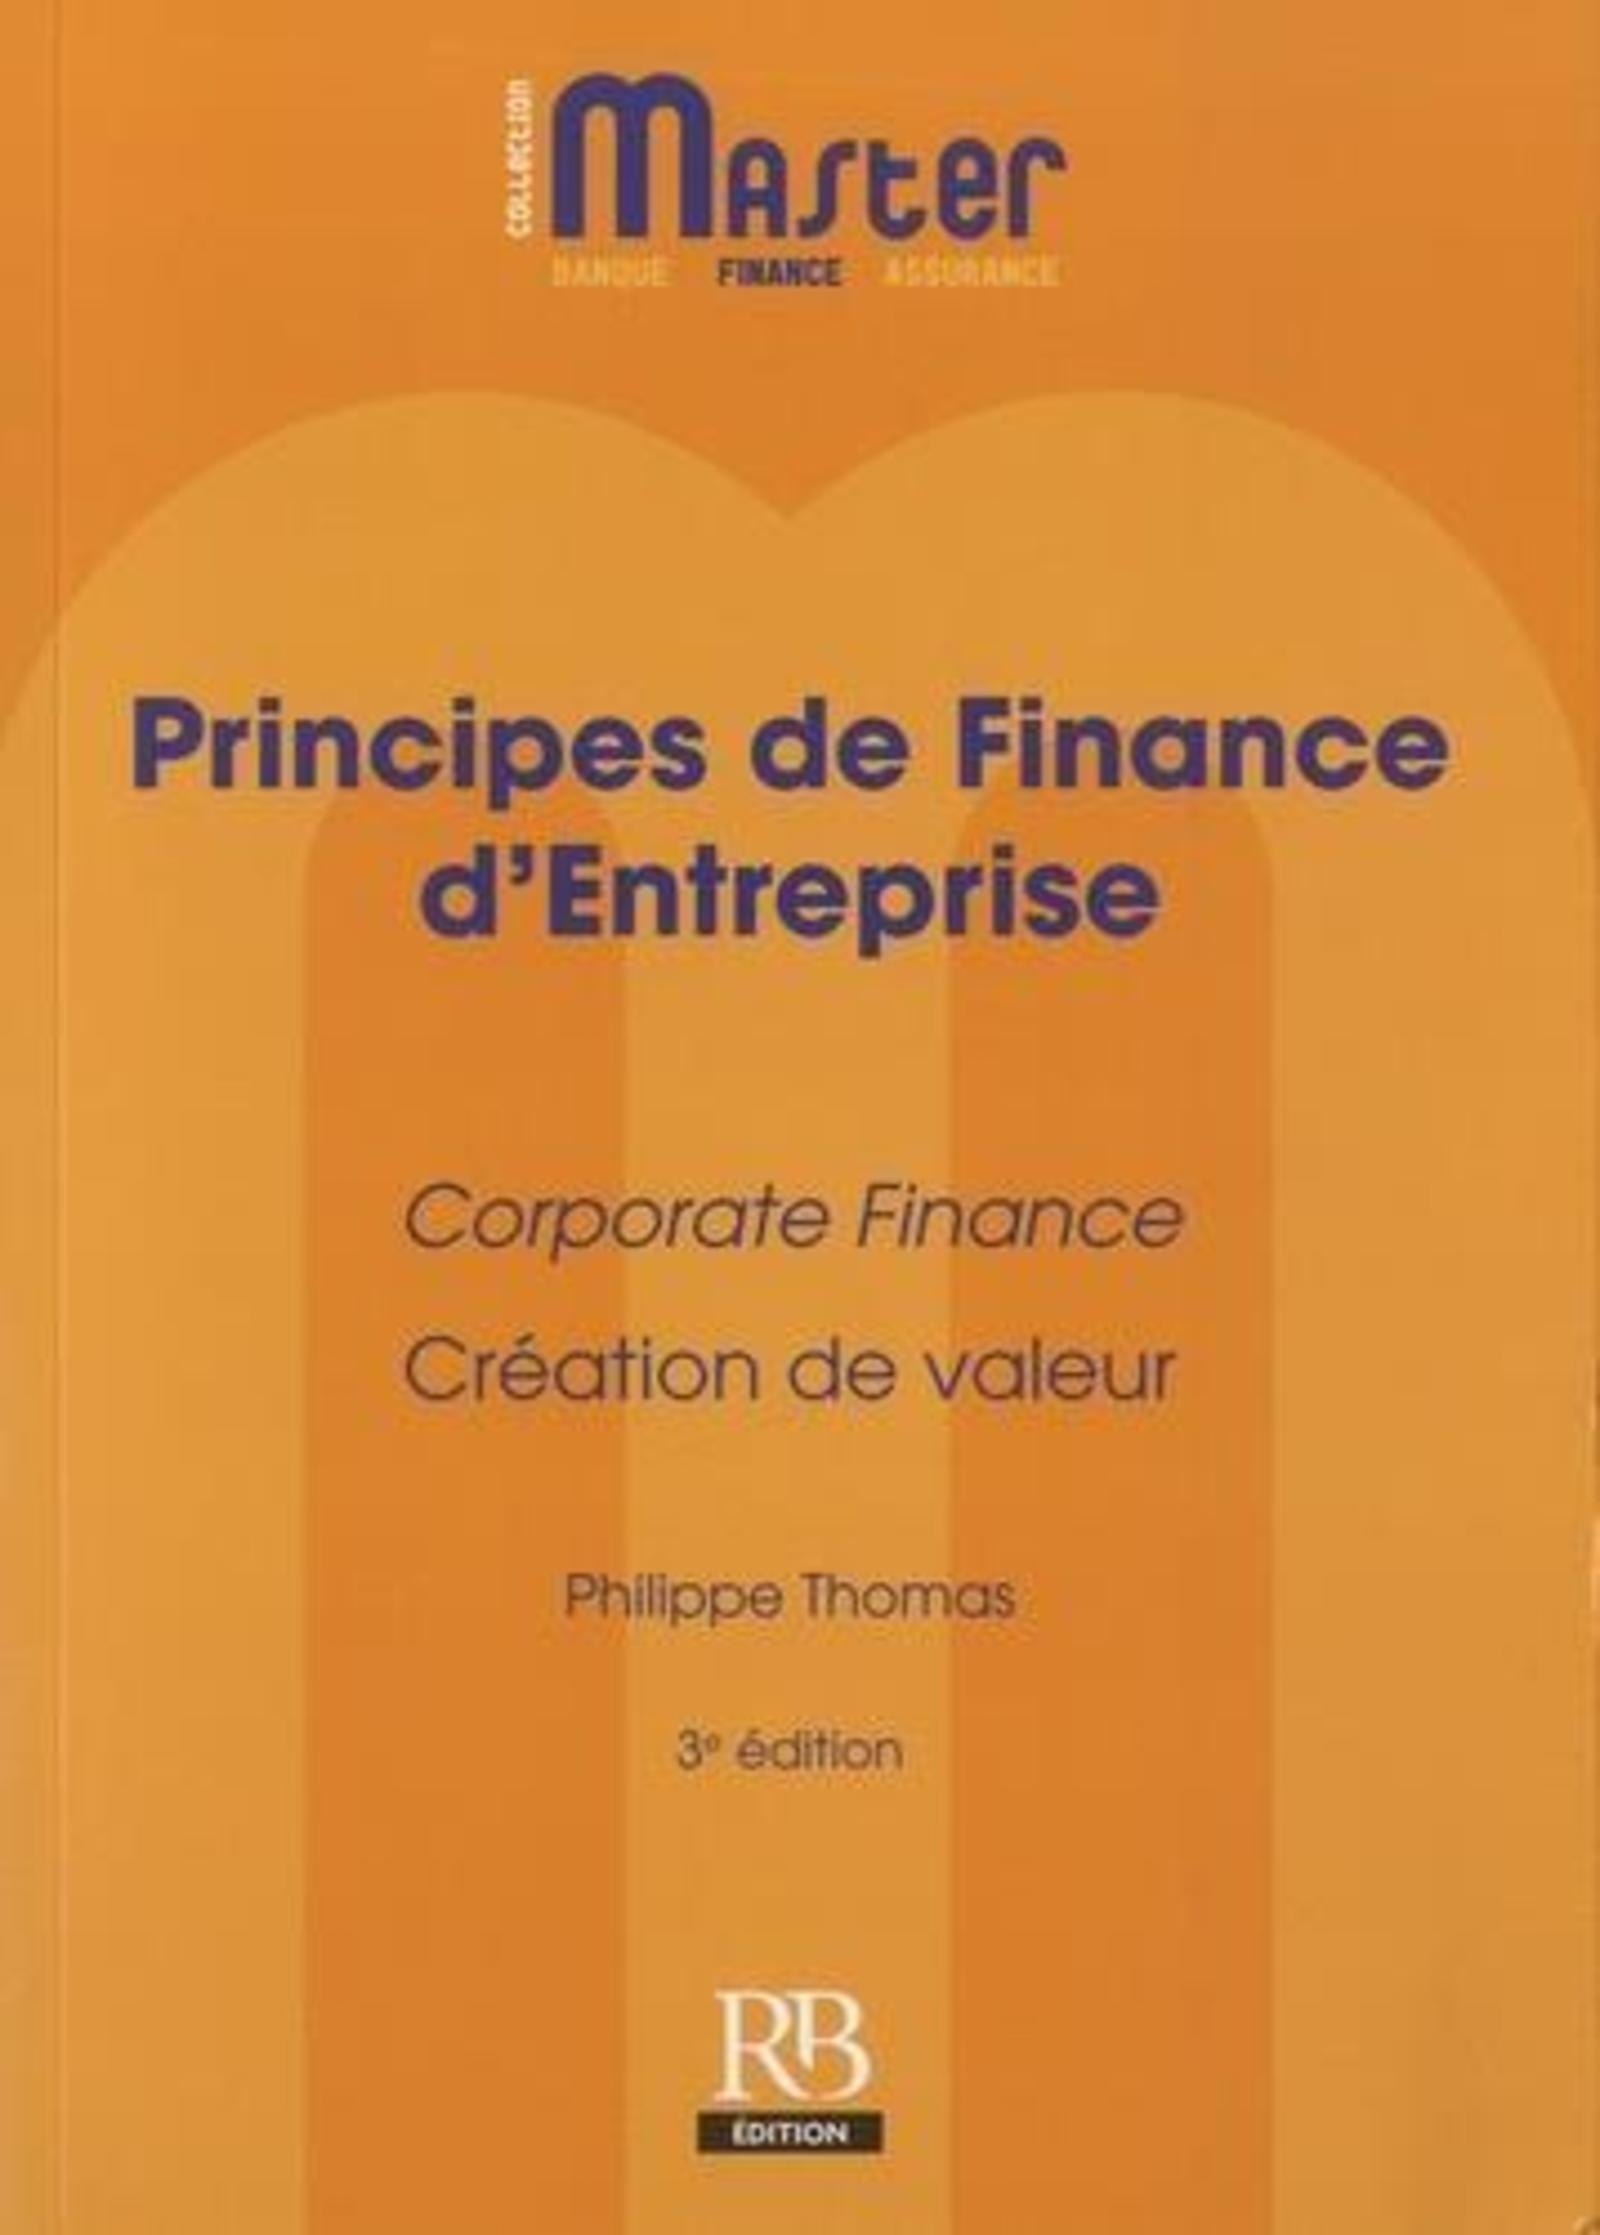 PRINCIPES DE FINANCE D'ENTREPRISE - CORPORATE FINANCE - CREATION DE VALEUR